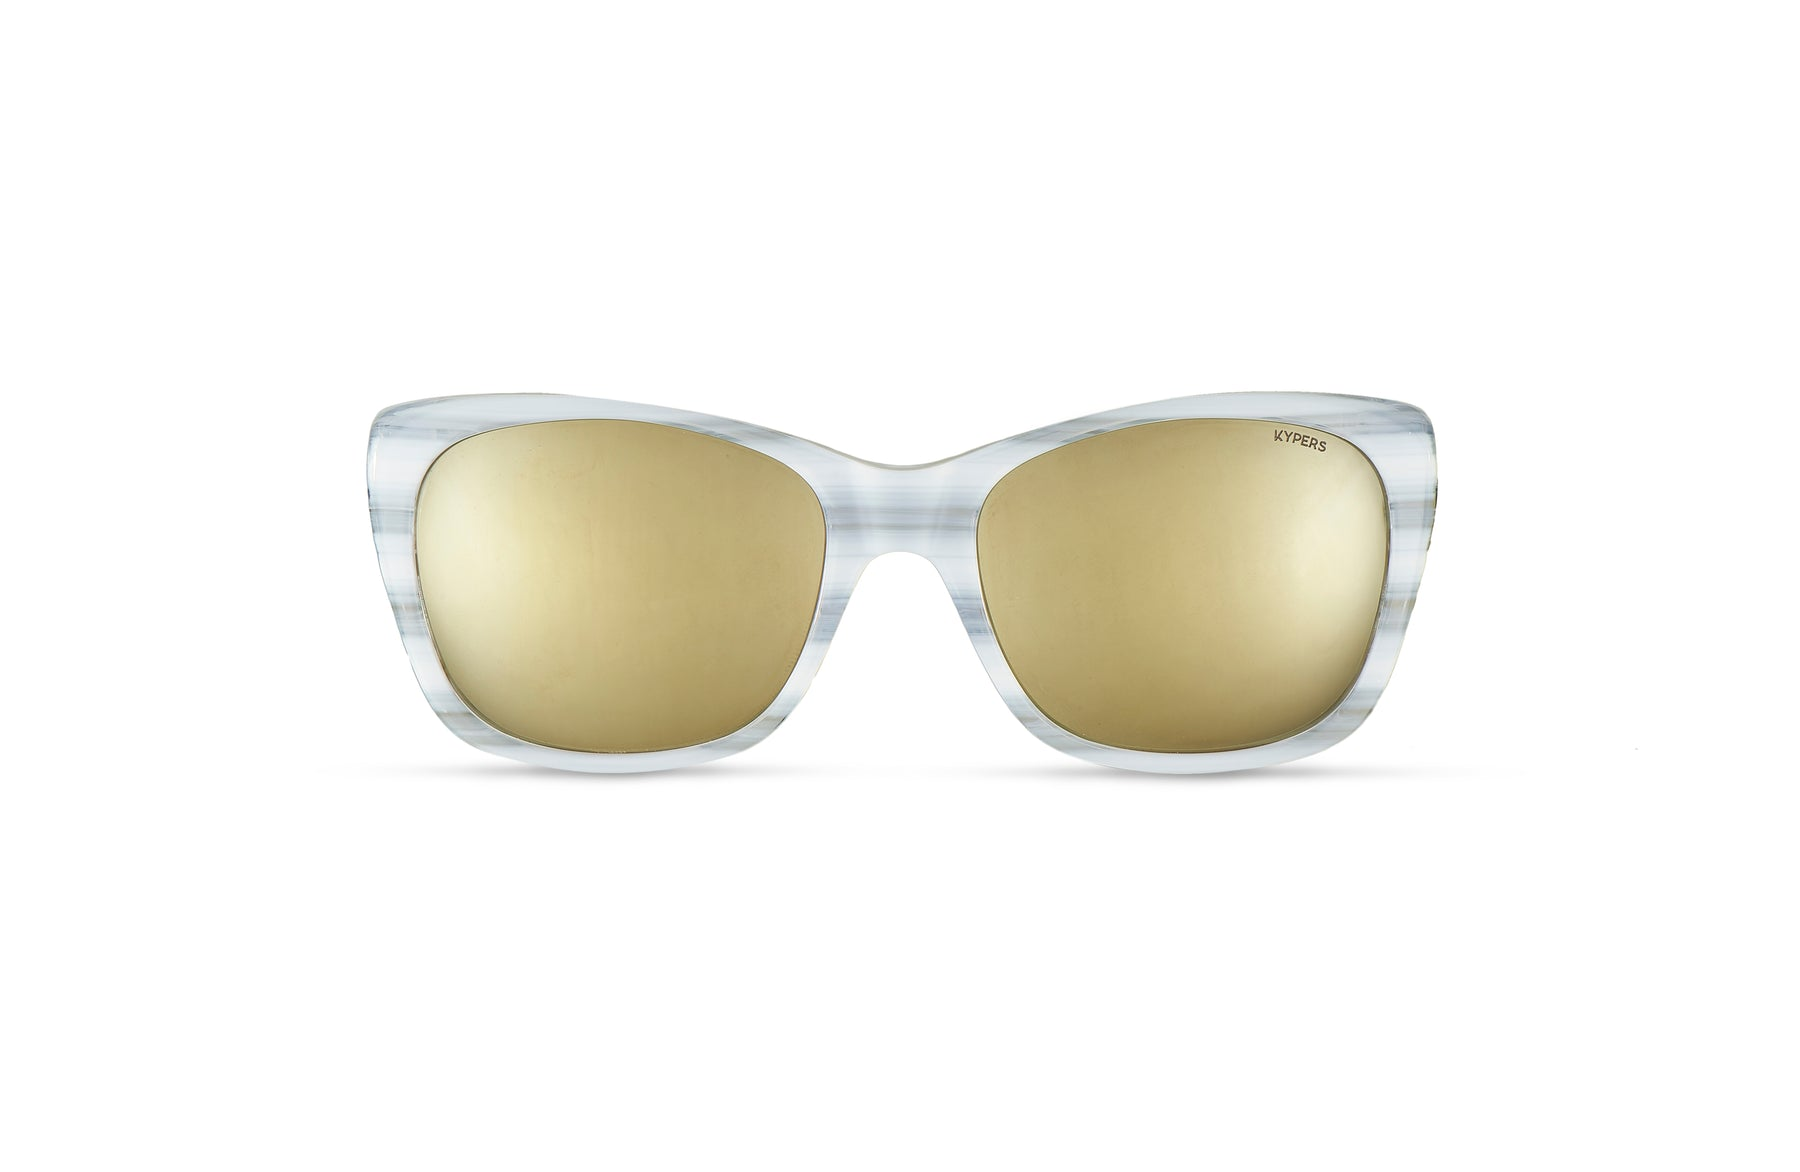 KYPERS sunglasses model GRETA GT001 with white frame and gold mirror lens